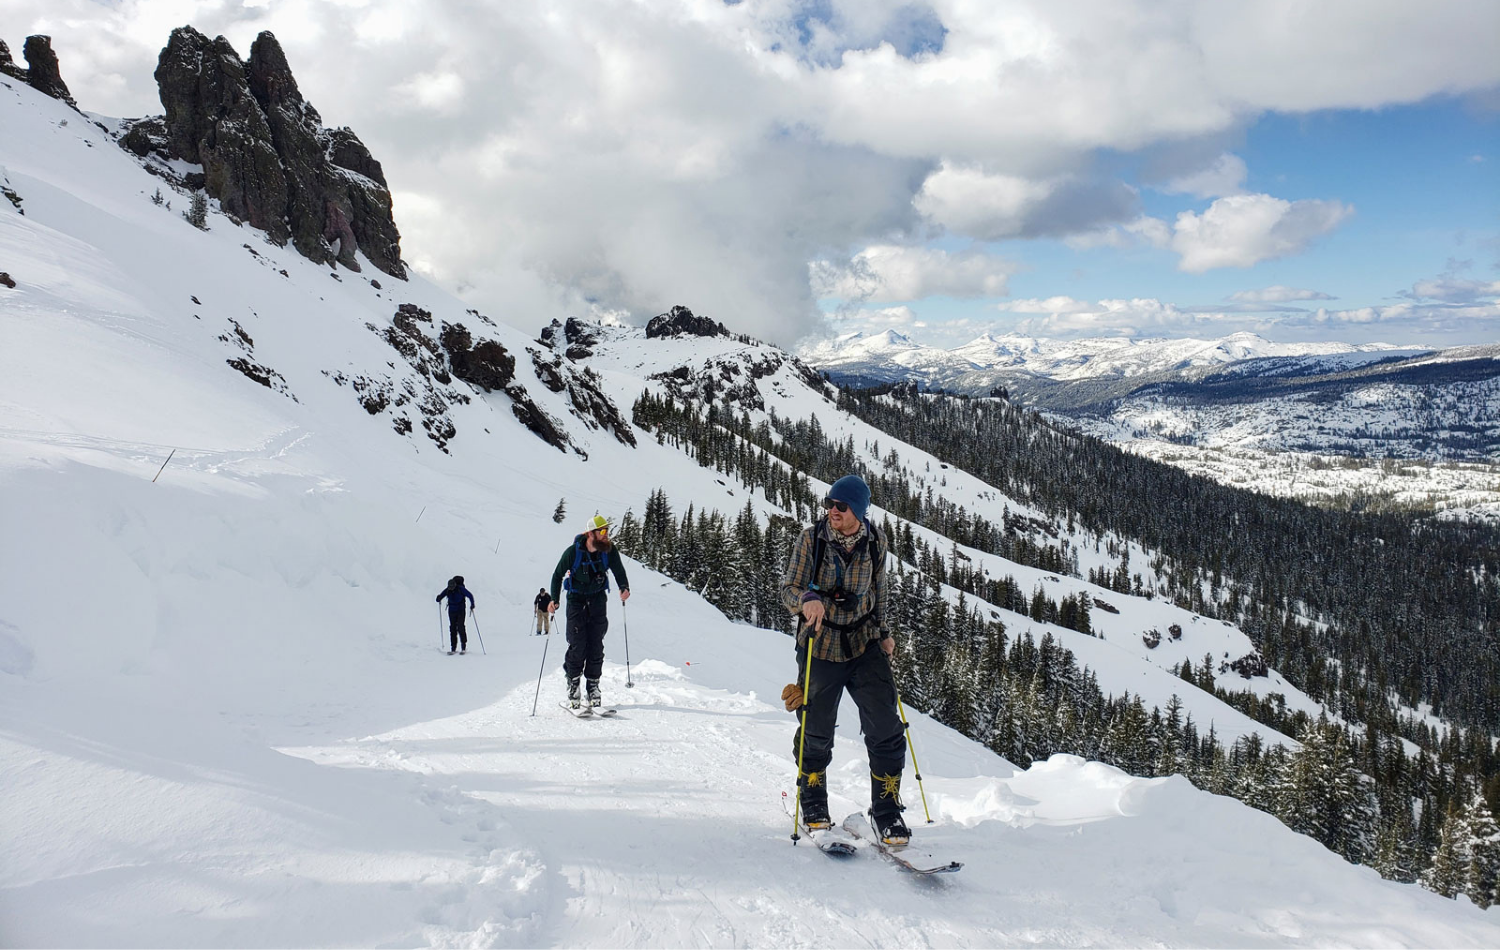 Bluebird Backcountry is one of the best Snowboarding & Skiing Resorts in Kremmling, CO - Grand County